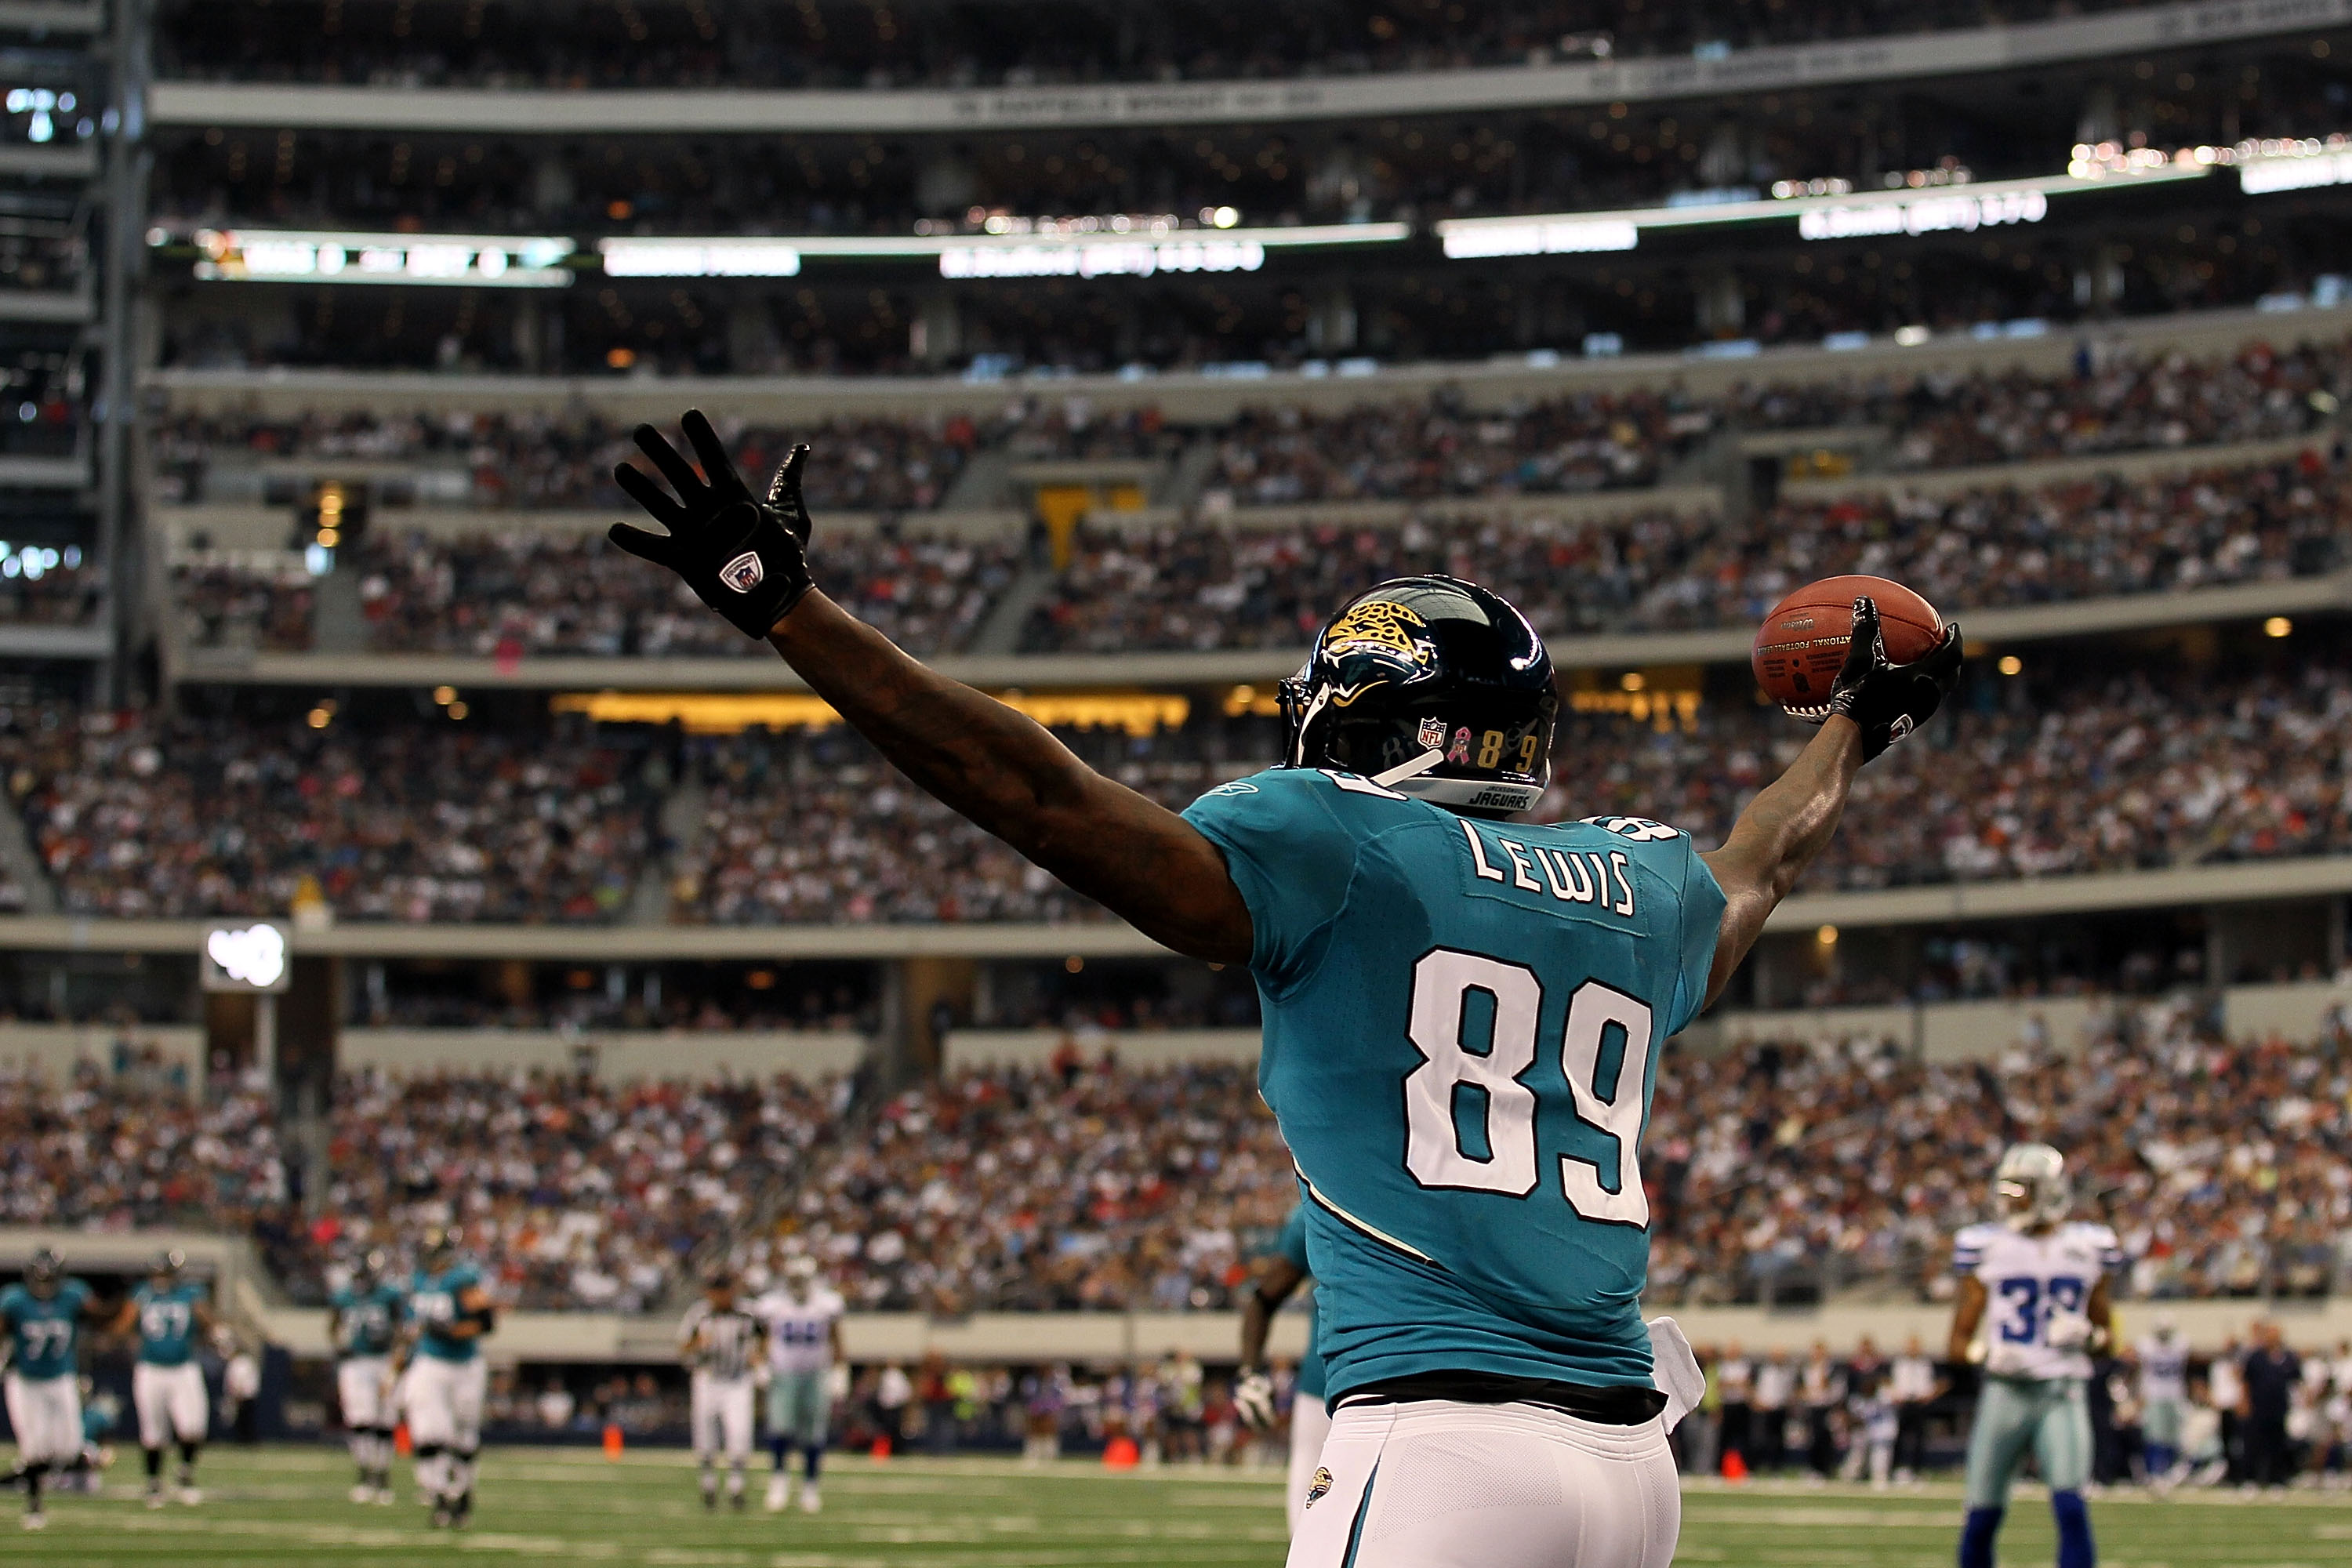 ARLINGTON, TX - OCTOBER 31:  Marcedes Lewis #89 of the Jacksonville Jaguars celebrates after he scored a touchdown against the Dallas Cowboys at Cowboys Stadium on October 31, 2010 in Arlington, Texas.  (Photo by Stephen Dunn/Getty Images)